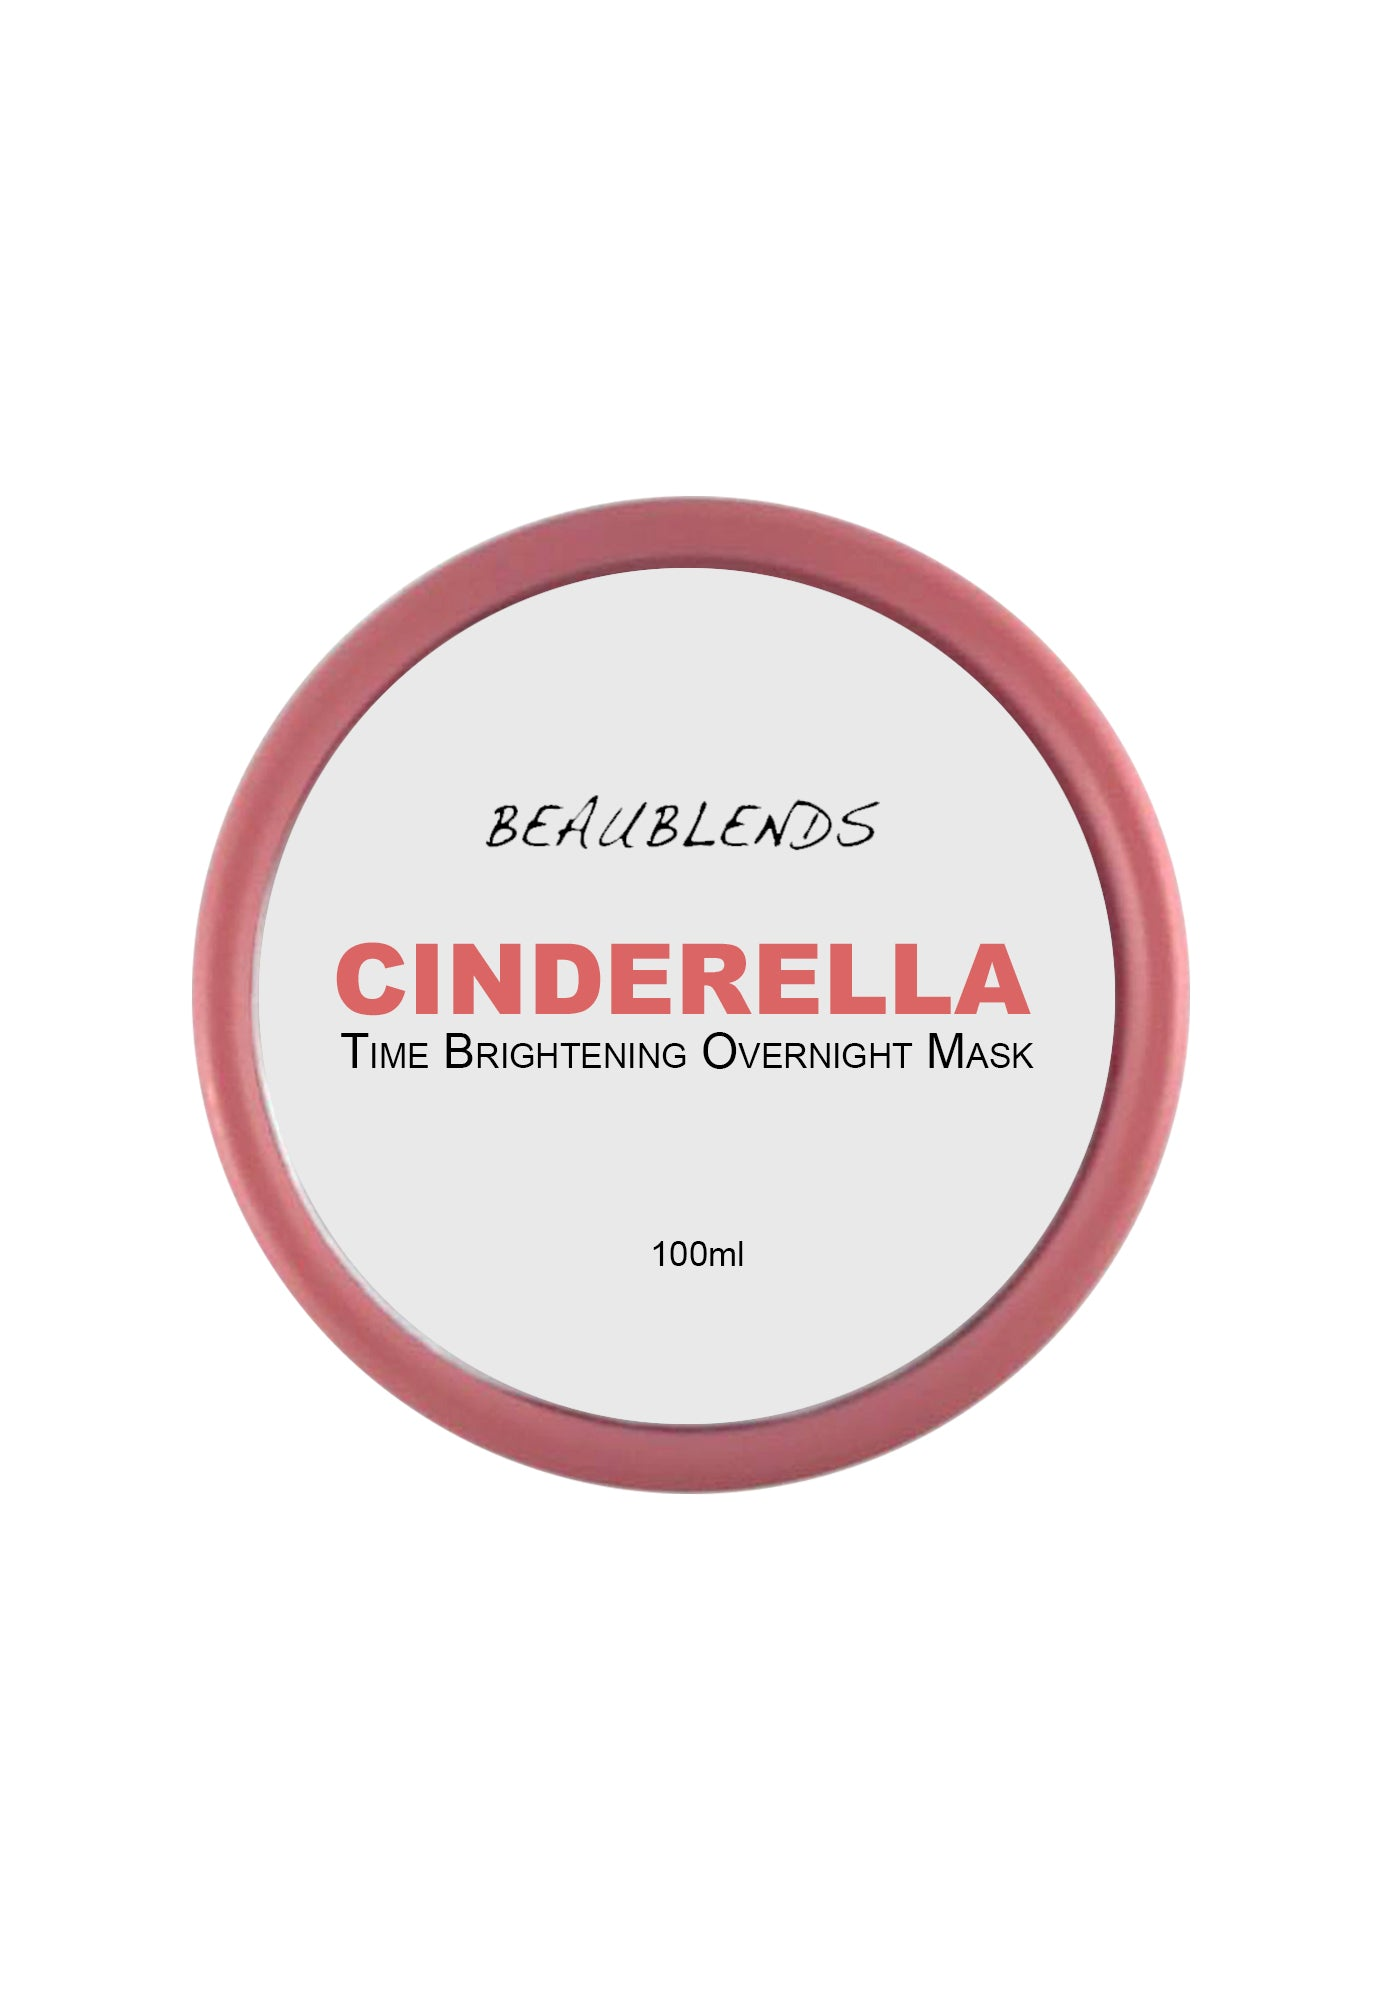 Cinderella Time Brightening Overnight Mask